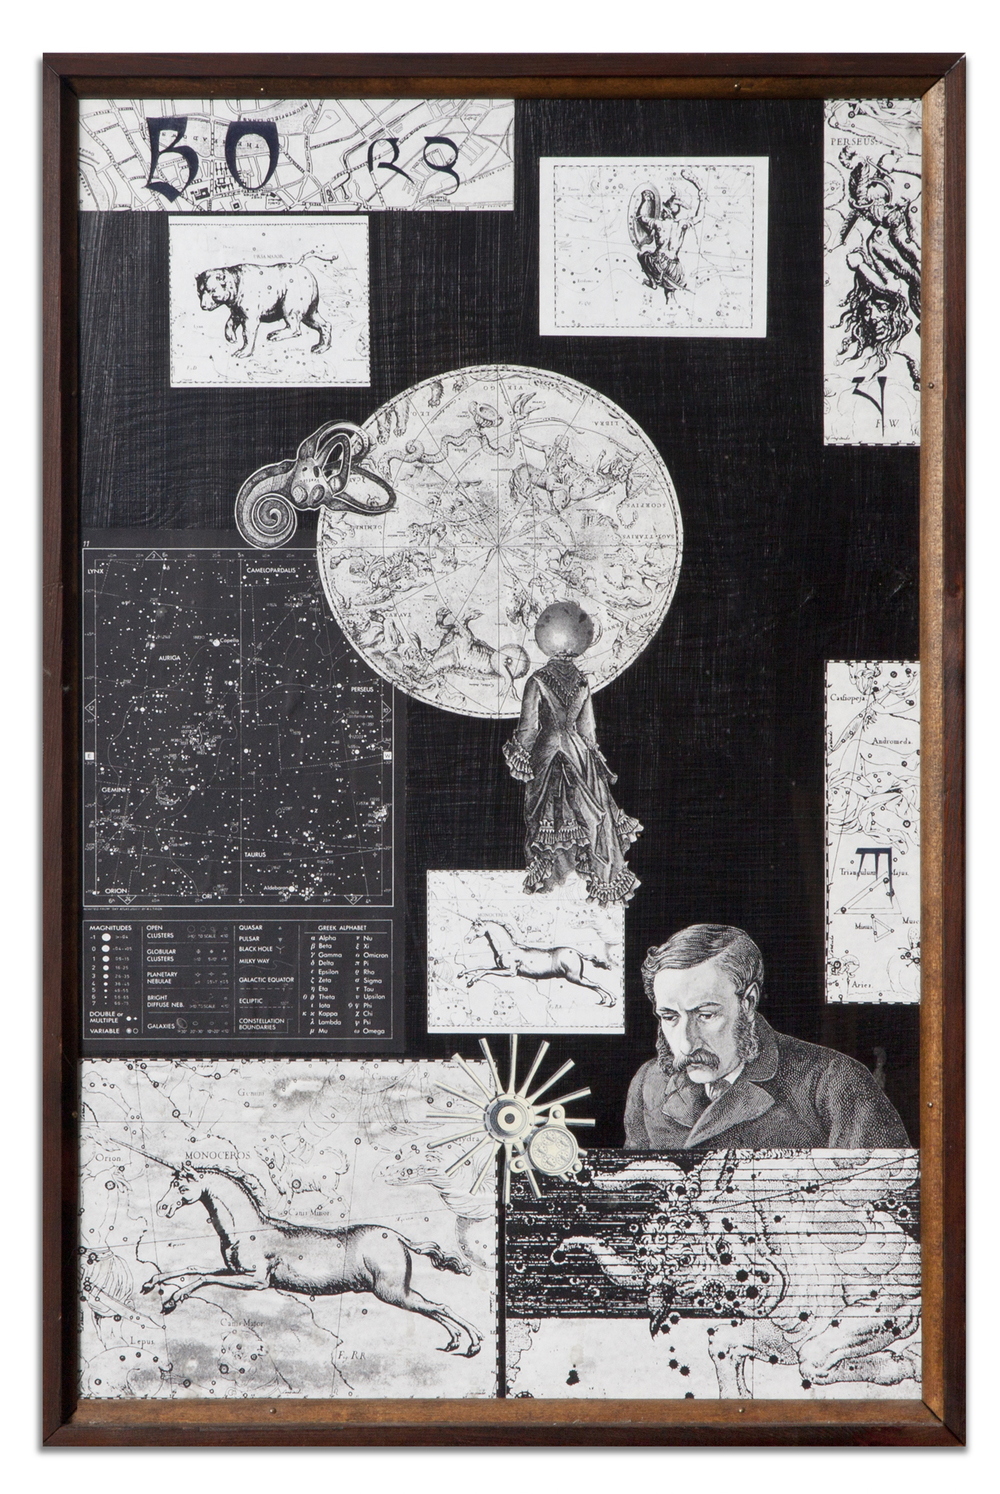 Lawrence Jordan, BULLETIN BOARD #2: LEGENDS OF THE STARS, 2000, collage black BG, 24 x 16 inches